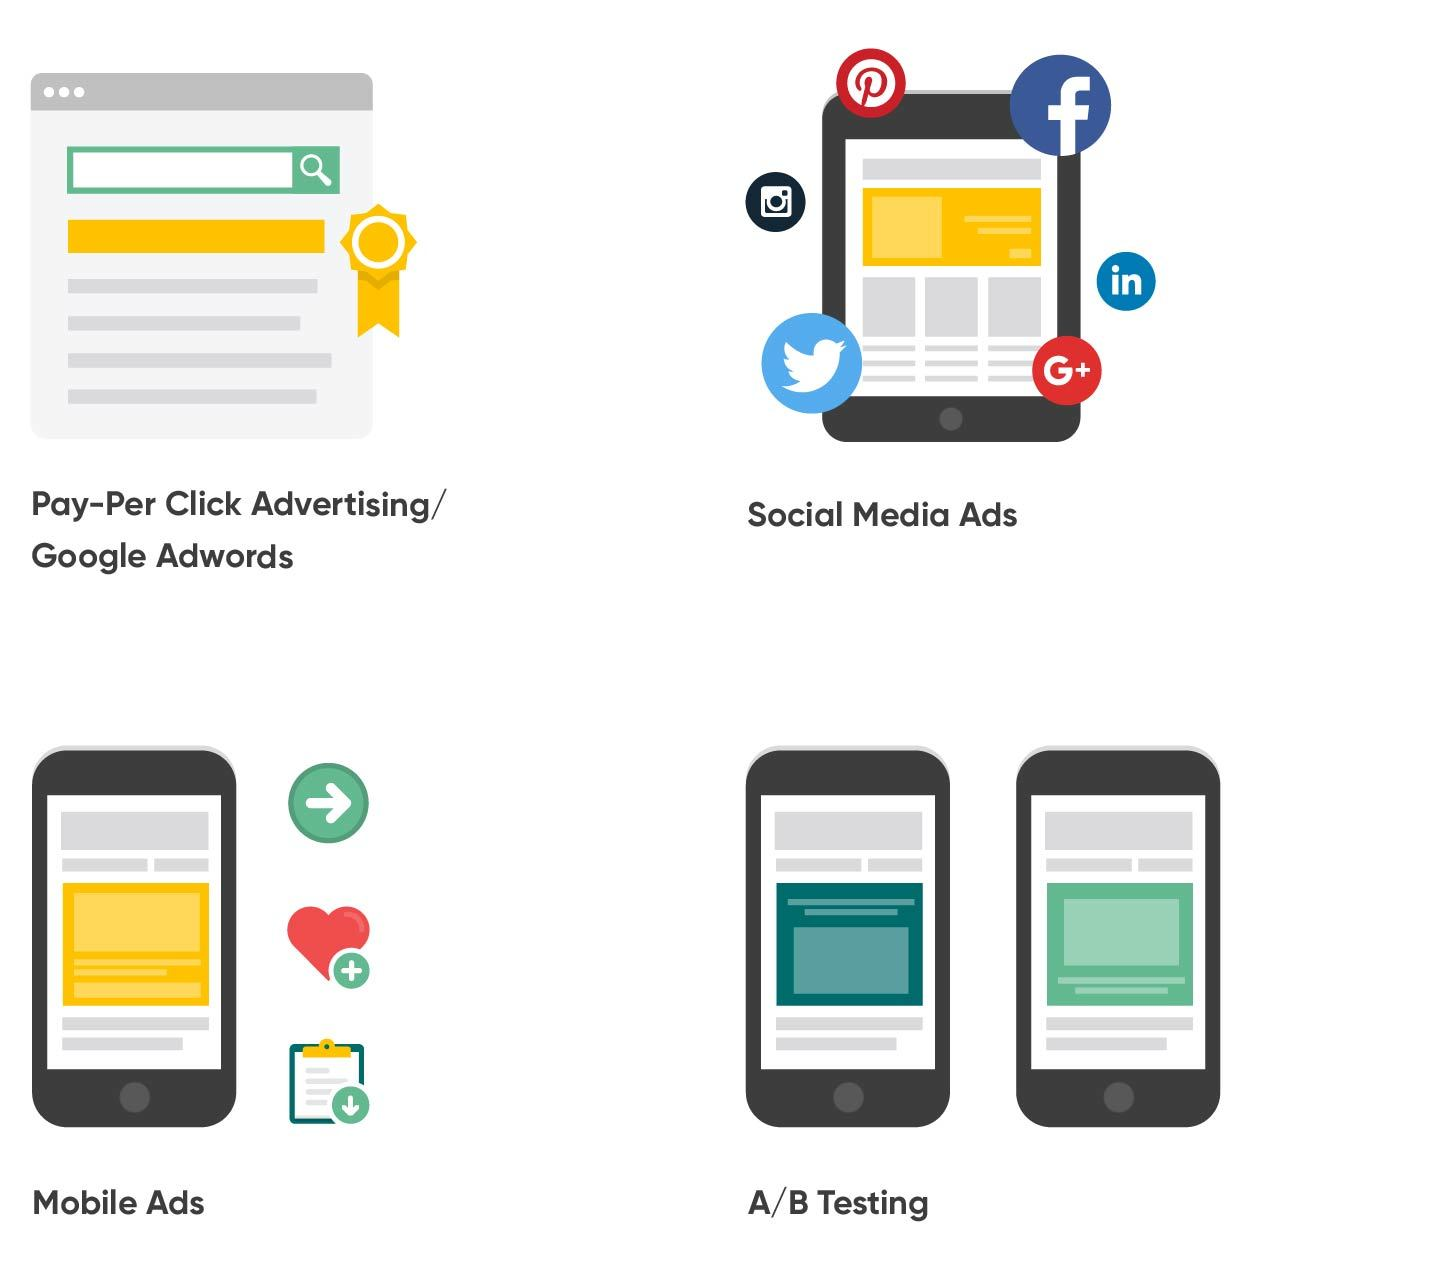 4-Ways-to-Increase-Your-ROI-With-Online-Advertising.jpg#asset:21532